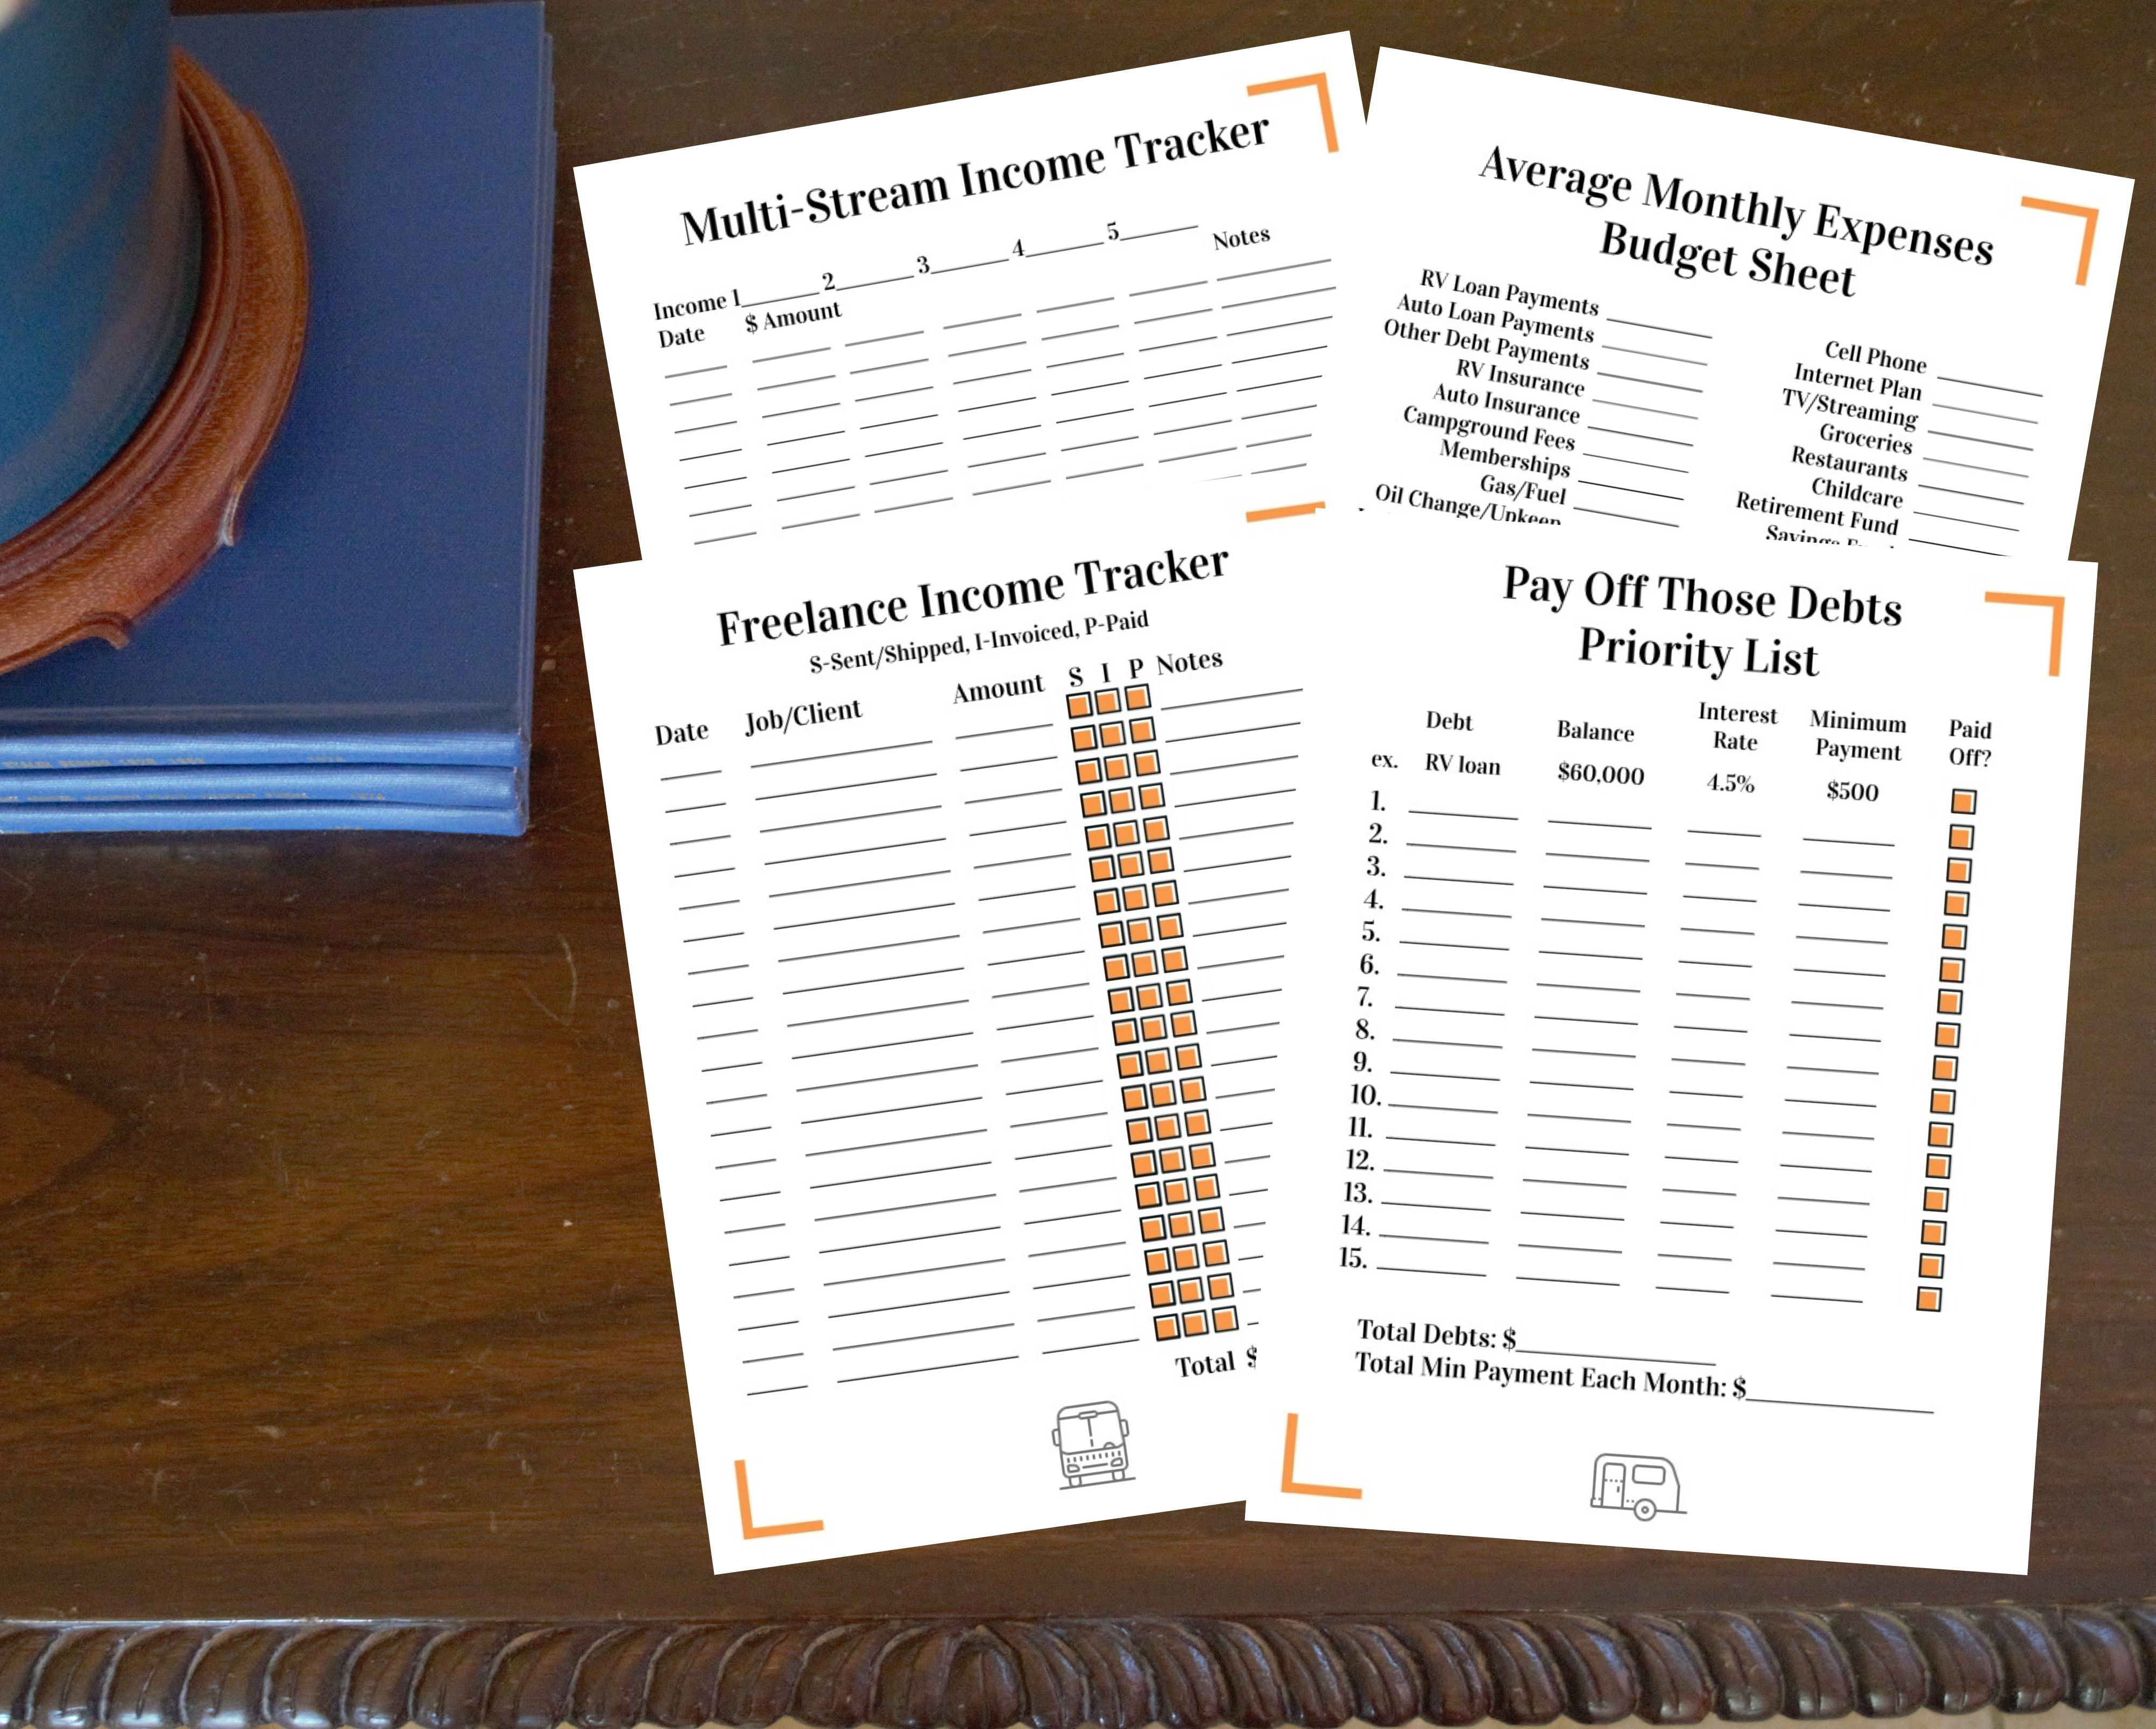 Budget Pack For Full Time Rv Travelers In